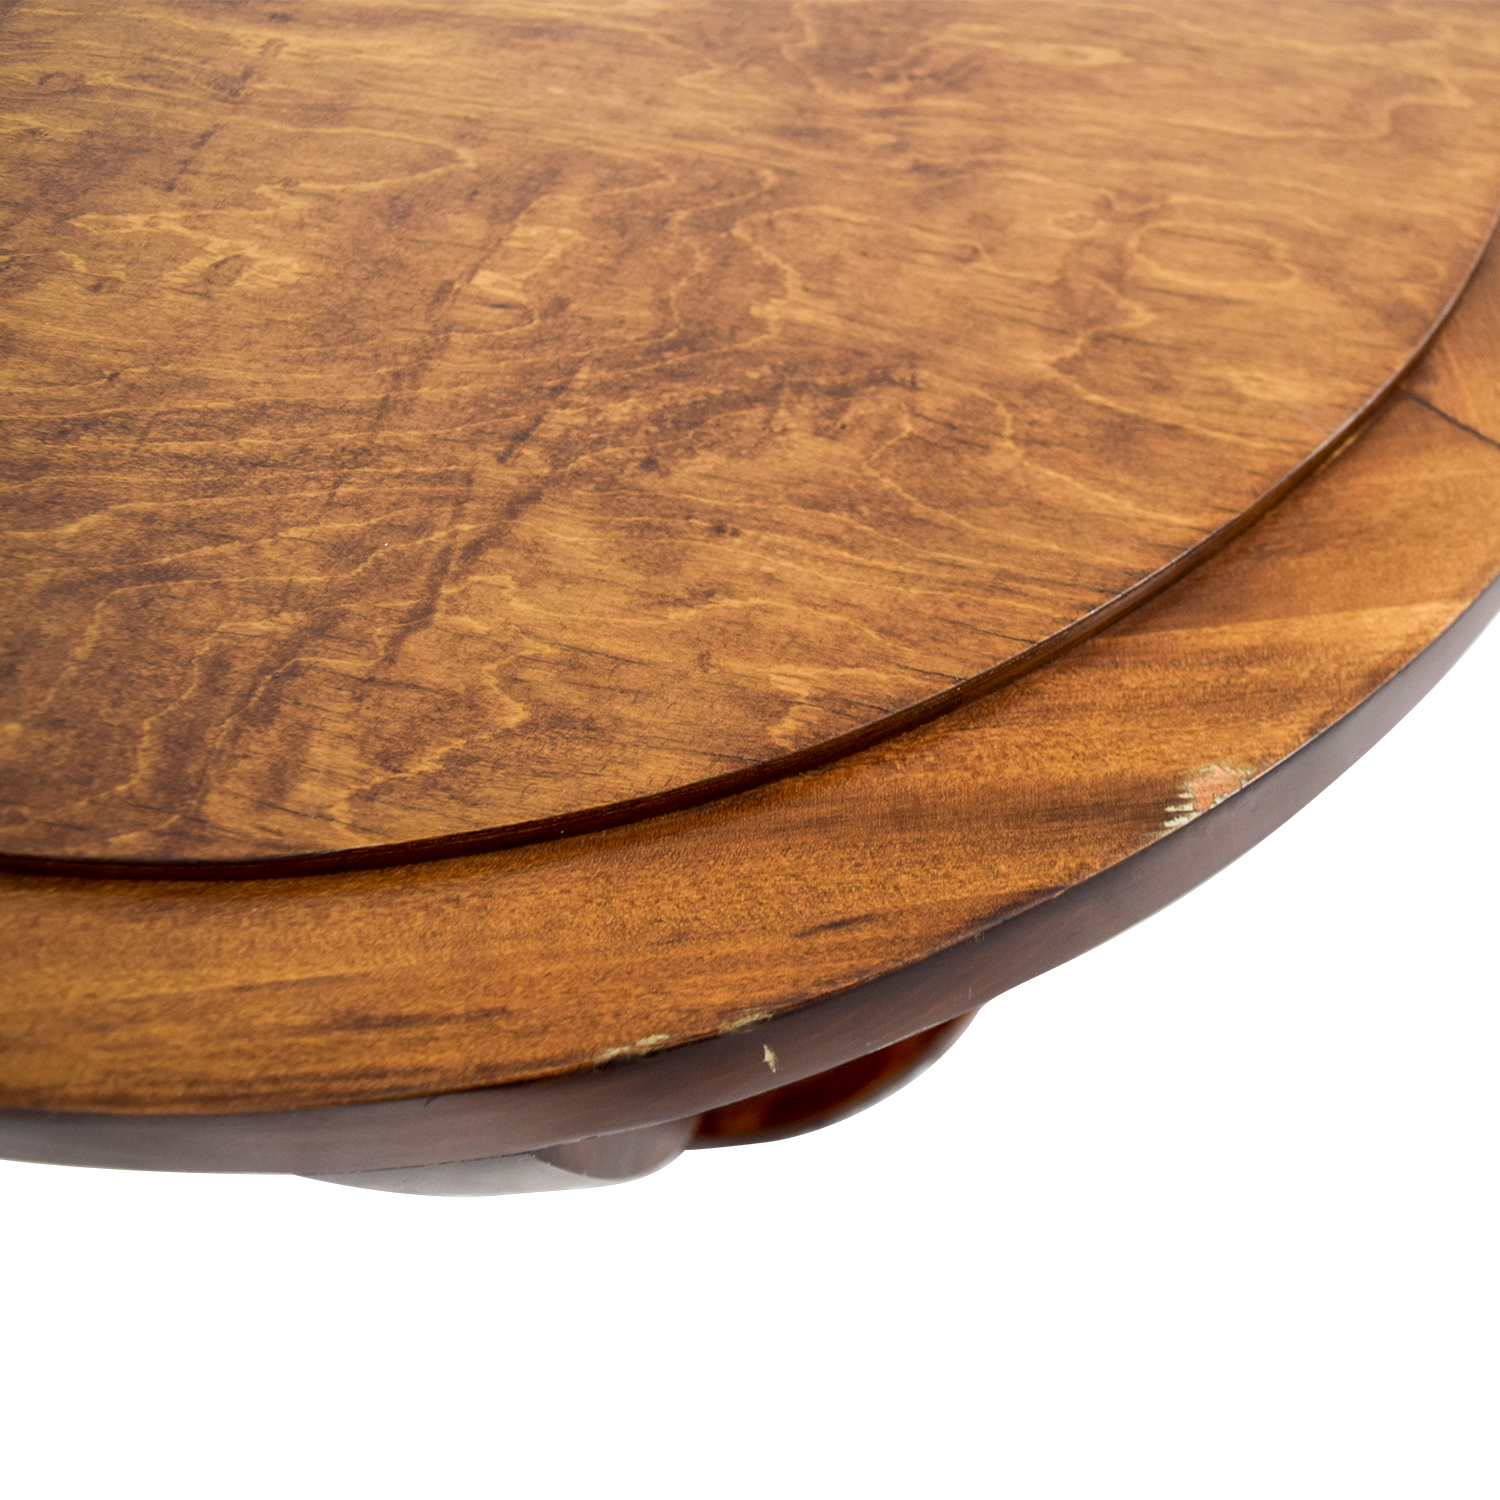 ... Furniture Masters Furniture Masters Round Wood End Table Used